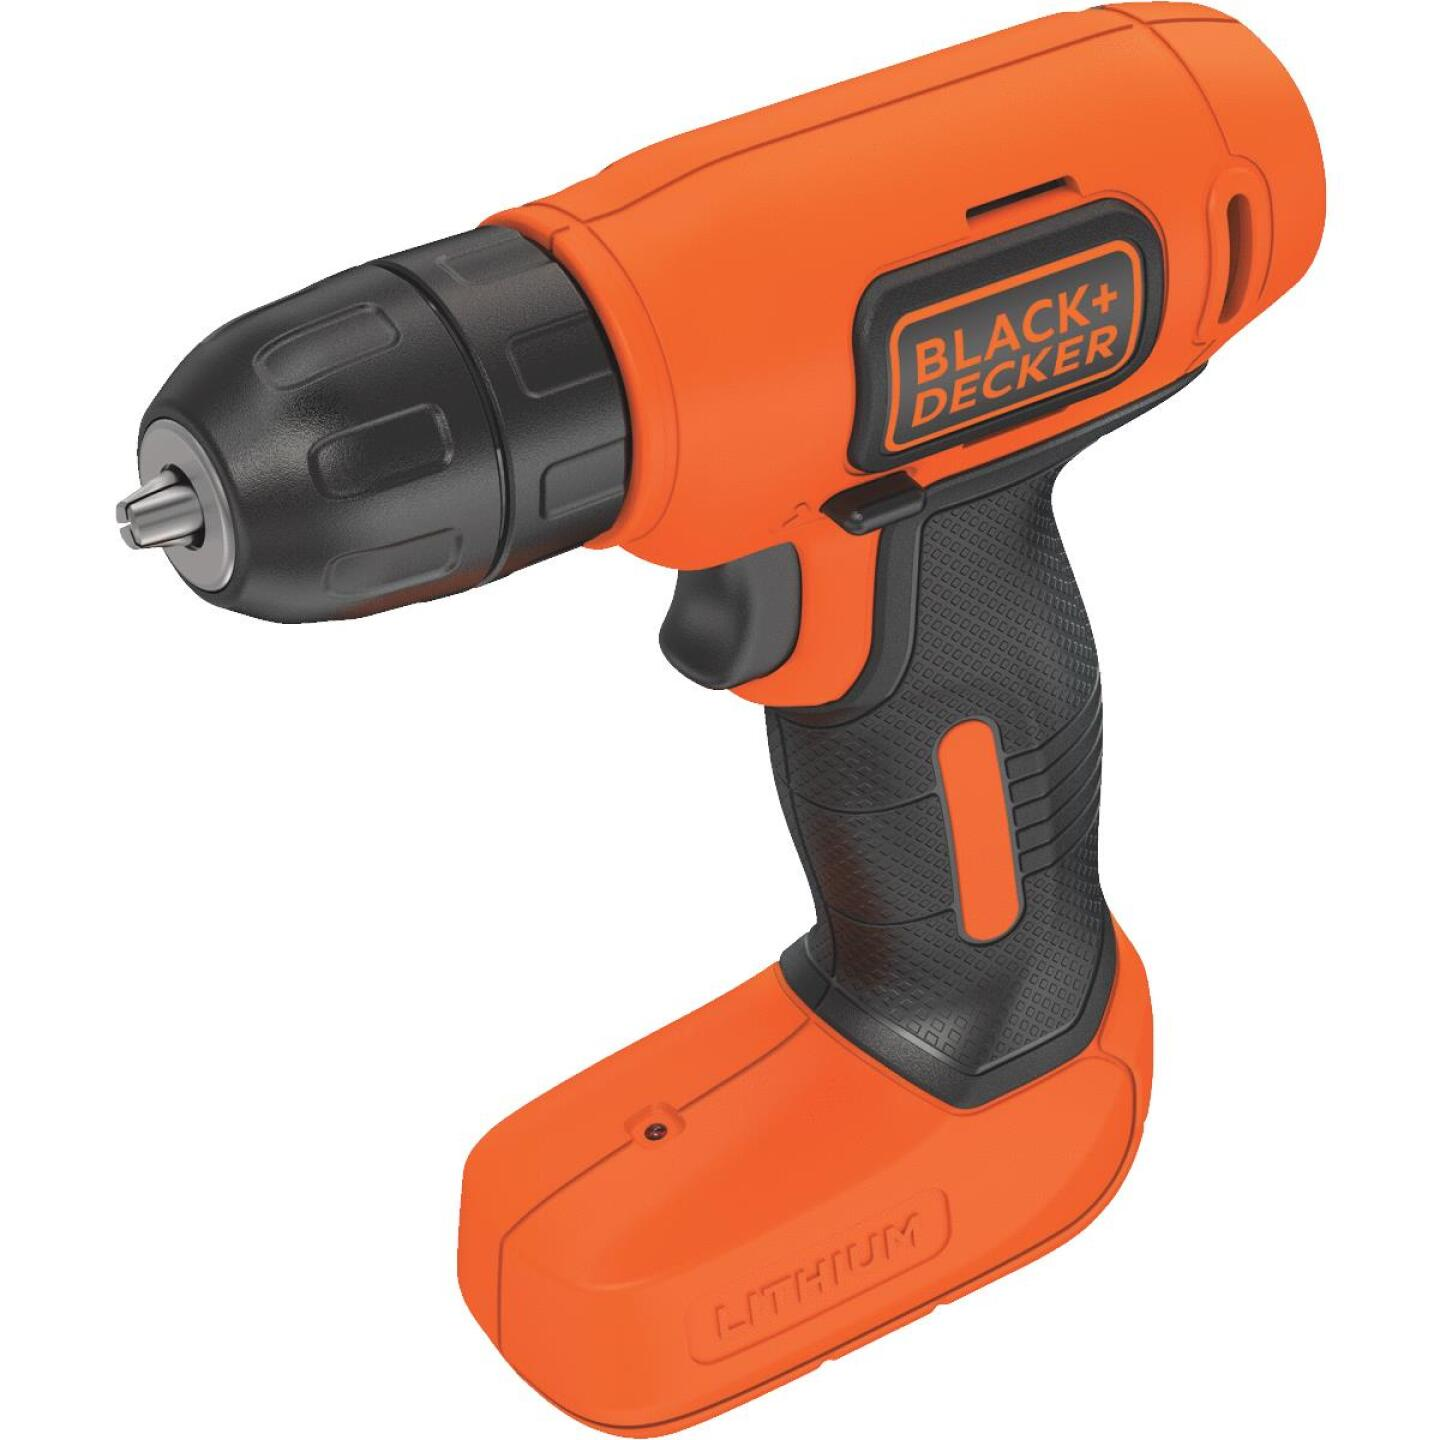 Black & Decker 8 Volt Lithium-Ion 3/8 In. Cordless Drill Kit Image 3